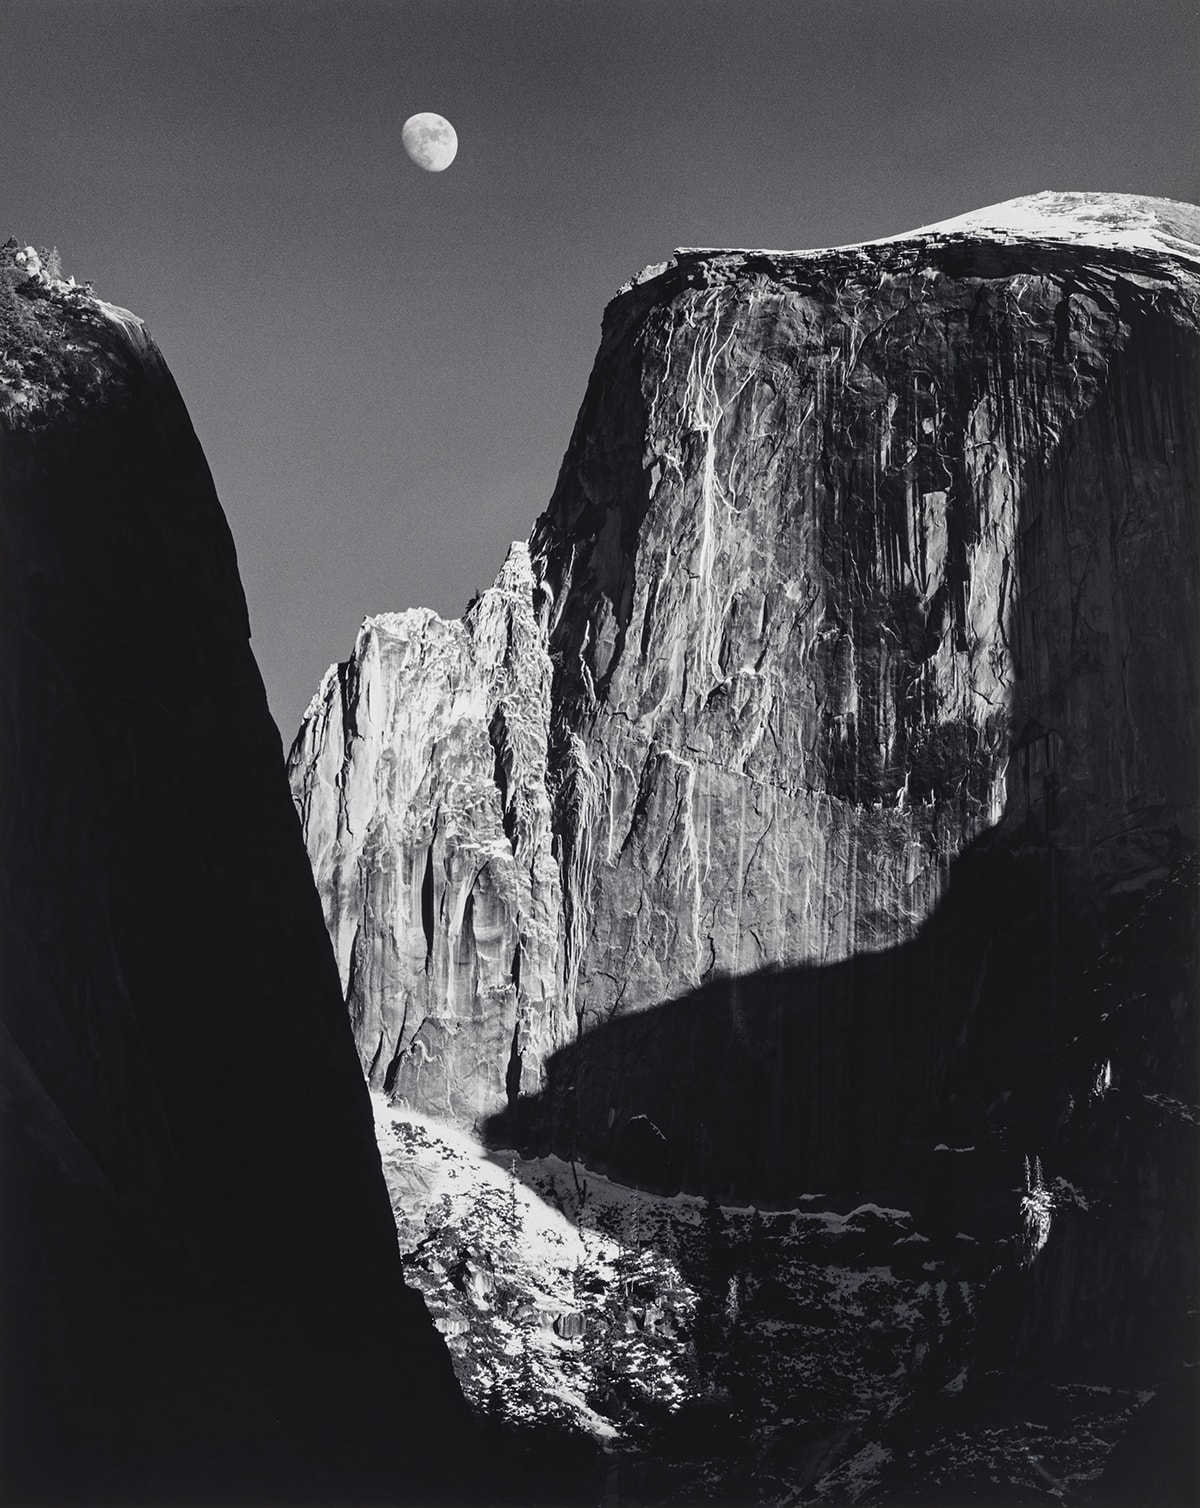 Image Description: Moon and Half Dome, Yosemite National Park. Ansel Adams. 1960. Gelatin silver print. Black and white photo of the sheer cliff wall of Half Dome in Yosemite under a waxing gibbous moon. The white moonlight reflects off the expansive Half Dome cliff edge highlighting the detailed texture in the rock appearing as vertical white lines. The jagged edges of the cliff are sharp and the top of the dome on the right appears smooth. A black edge of another cliff appears on the left side in the foreground. A large shadow in the shape of a backward L covers the right side of Half Dome extending from the right side of the photo into the middle. The rocks at the bottom of the two cliffs are slightly blurred and partially covered by shadows.